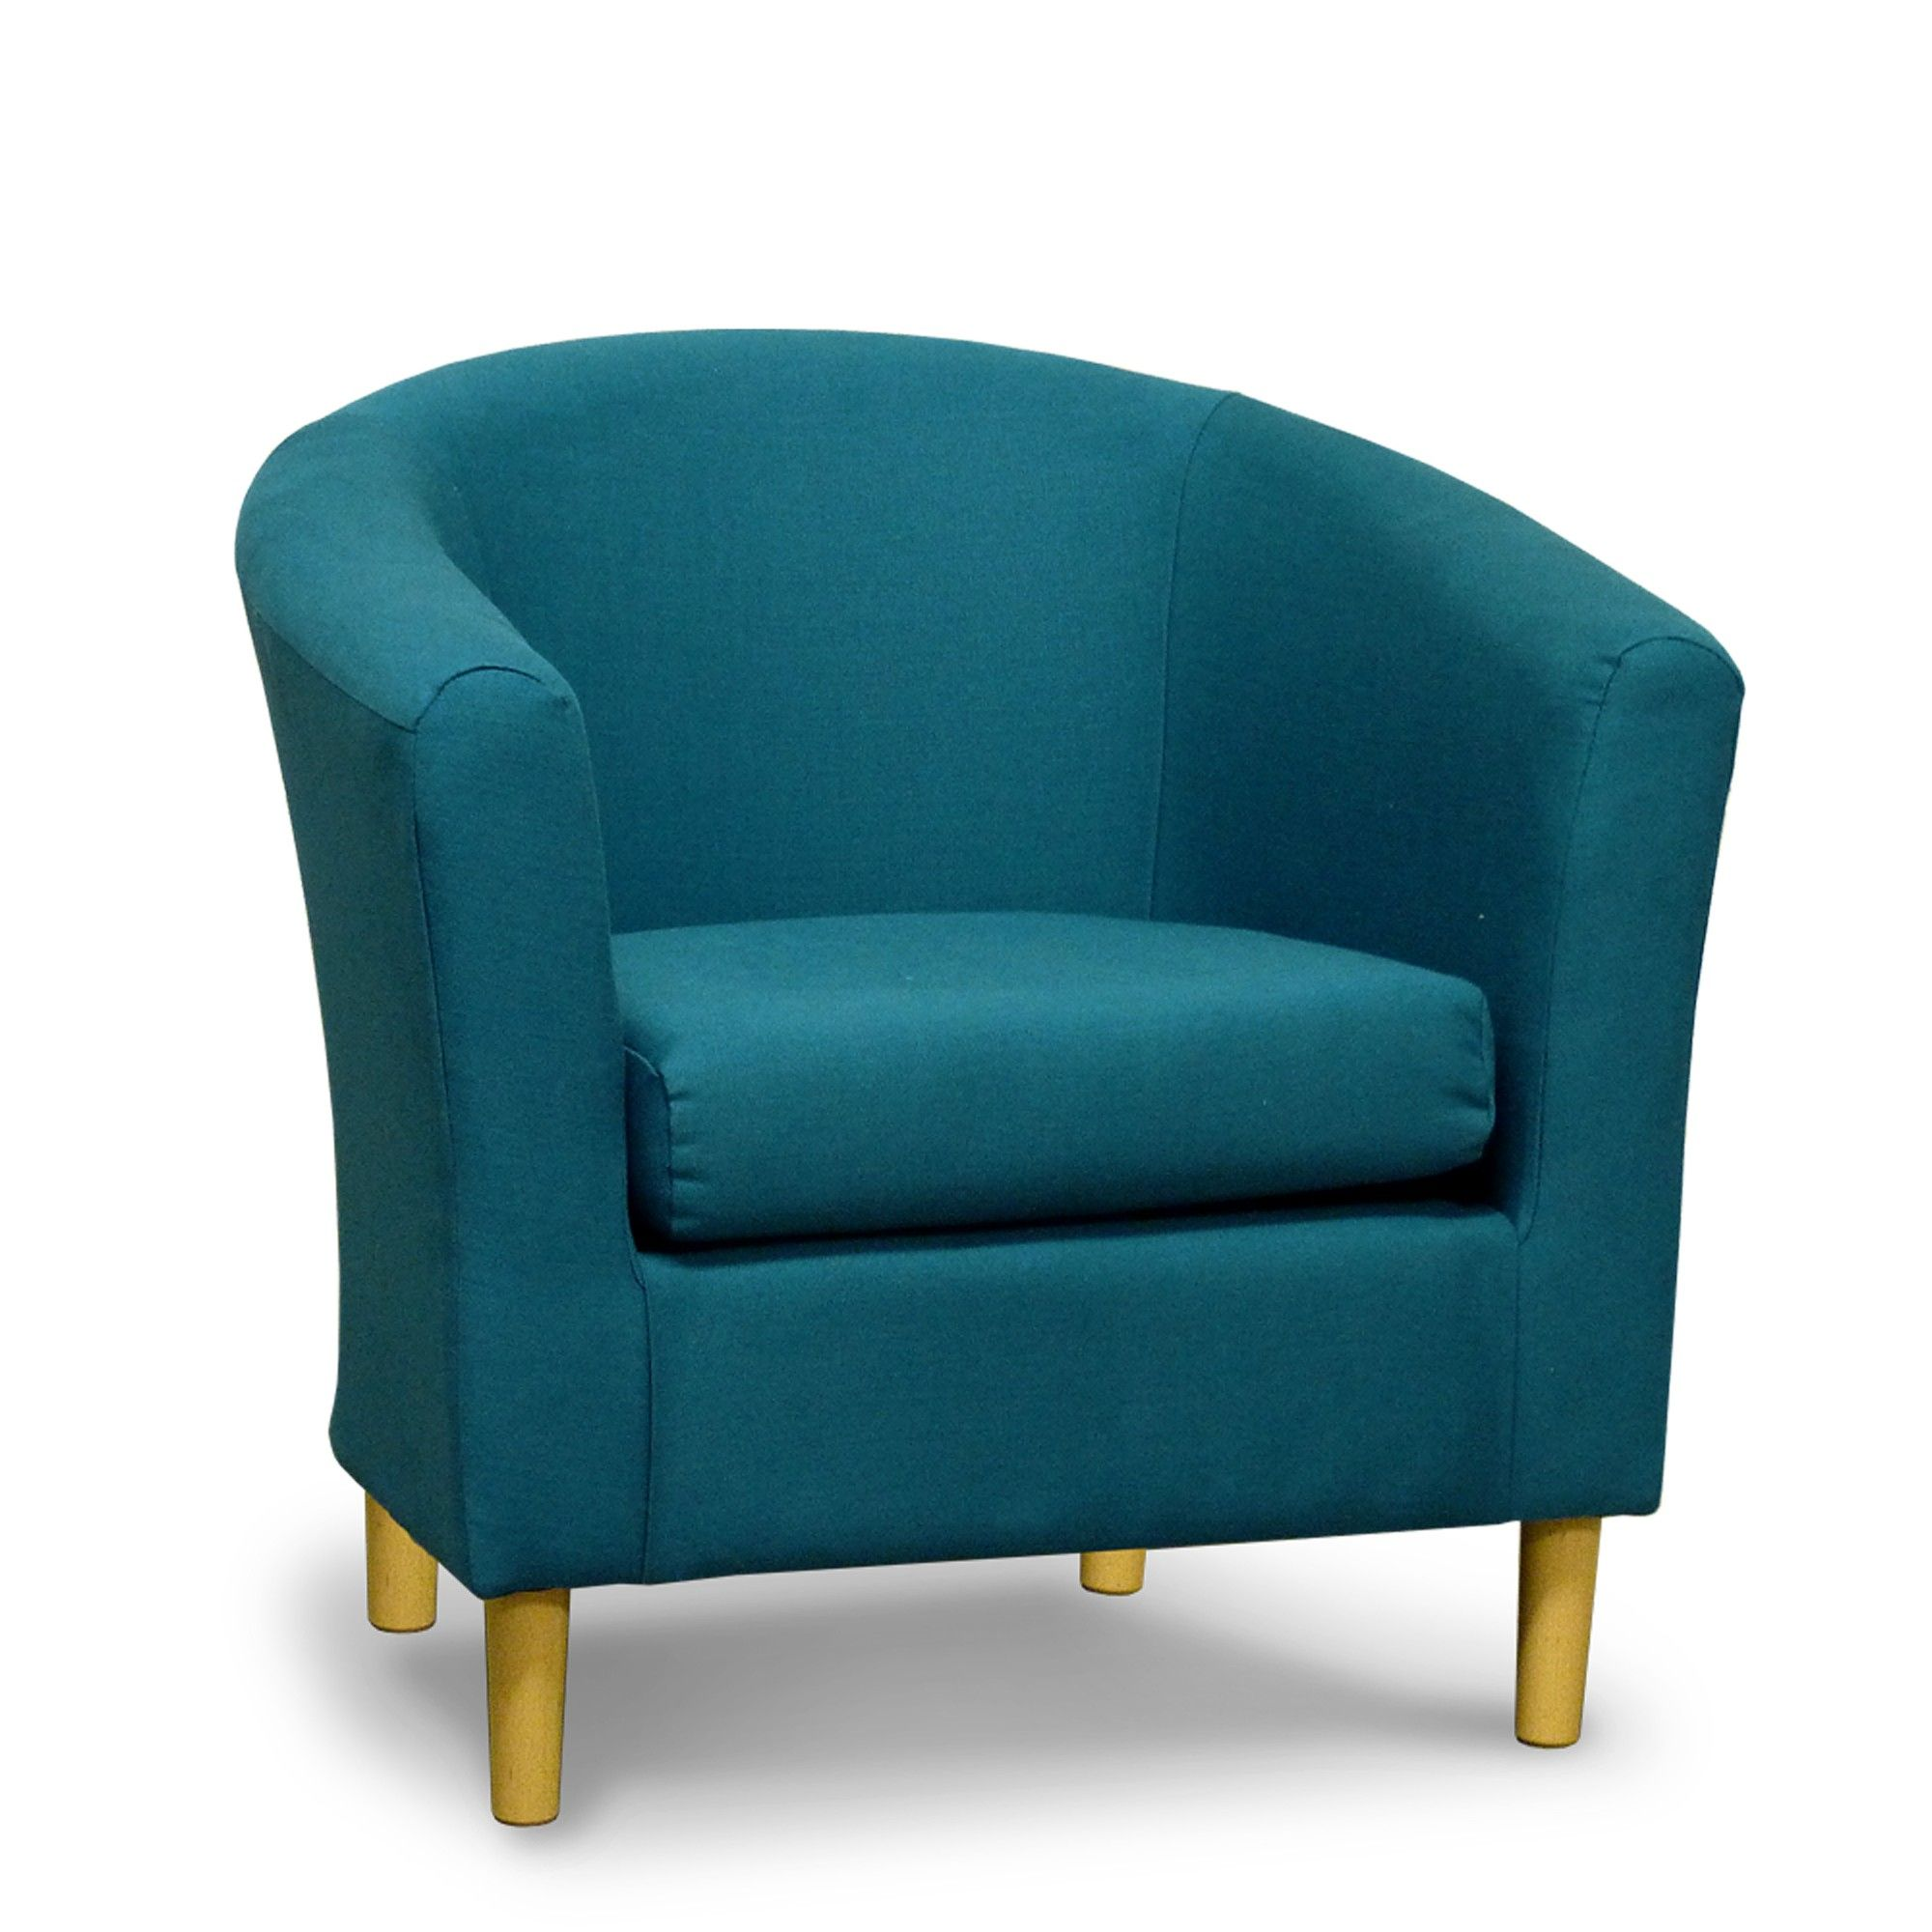 Teal Fabric Tub Chair 45 For the Home Pinterest